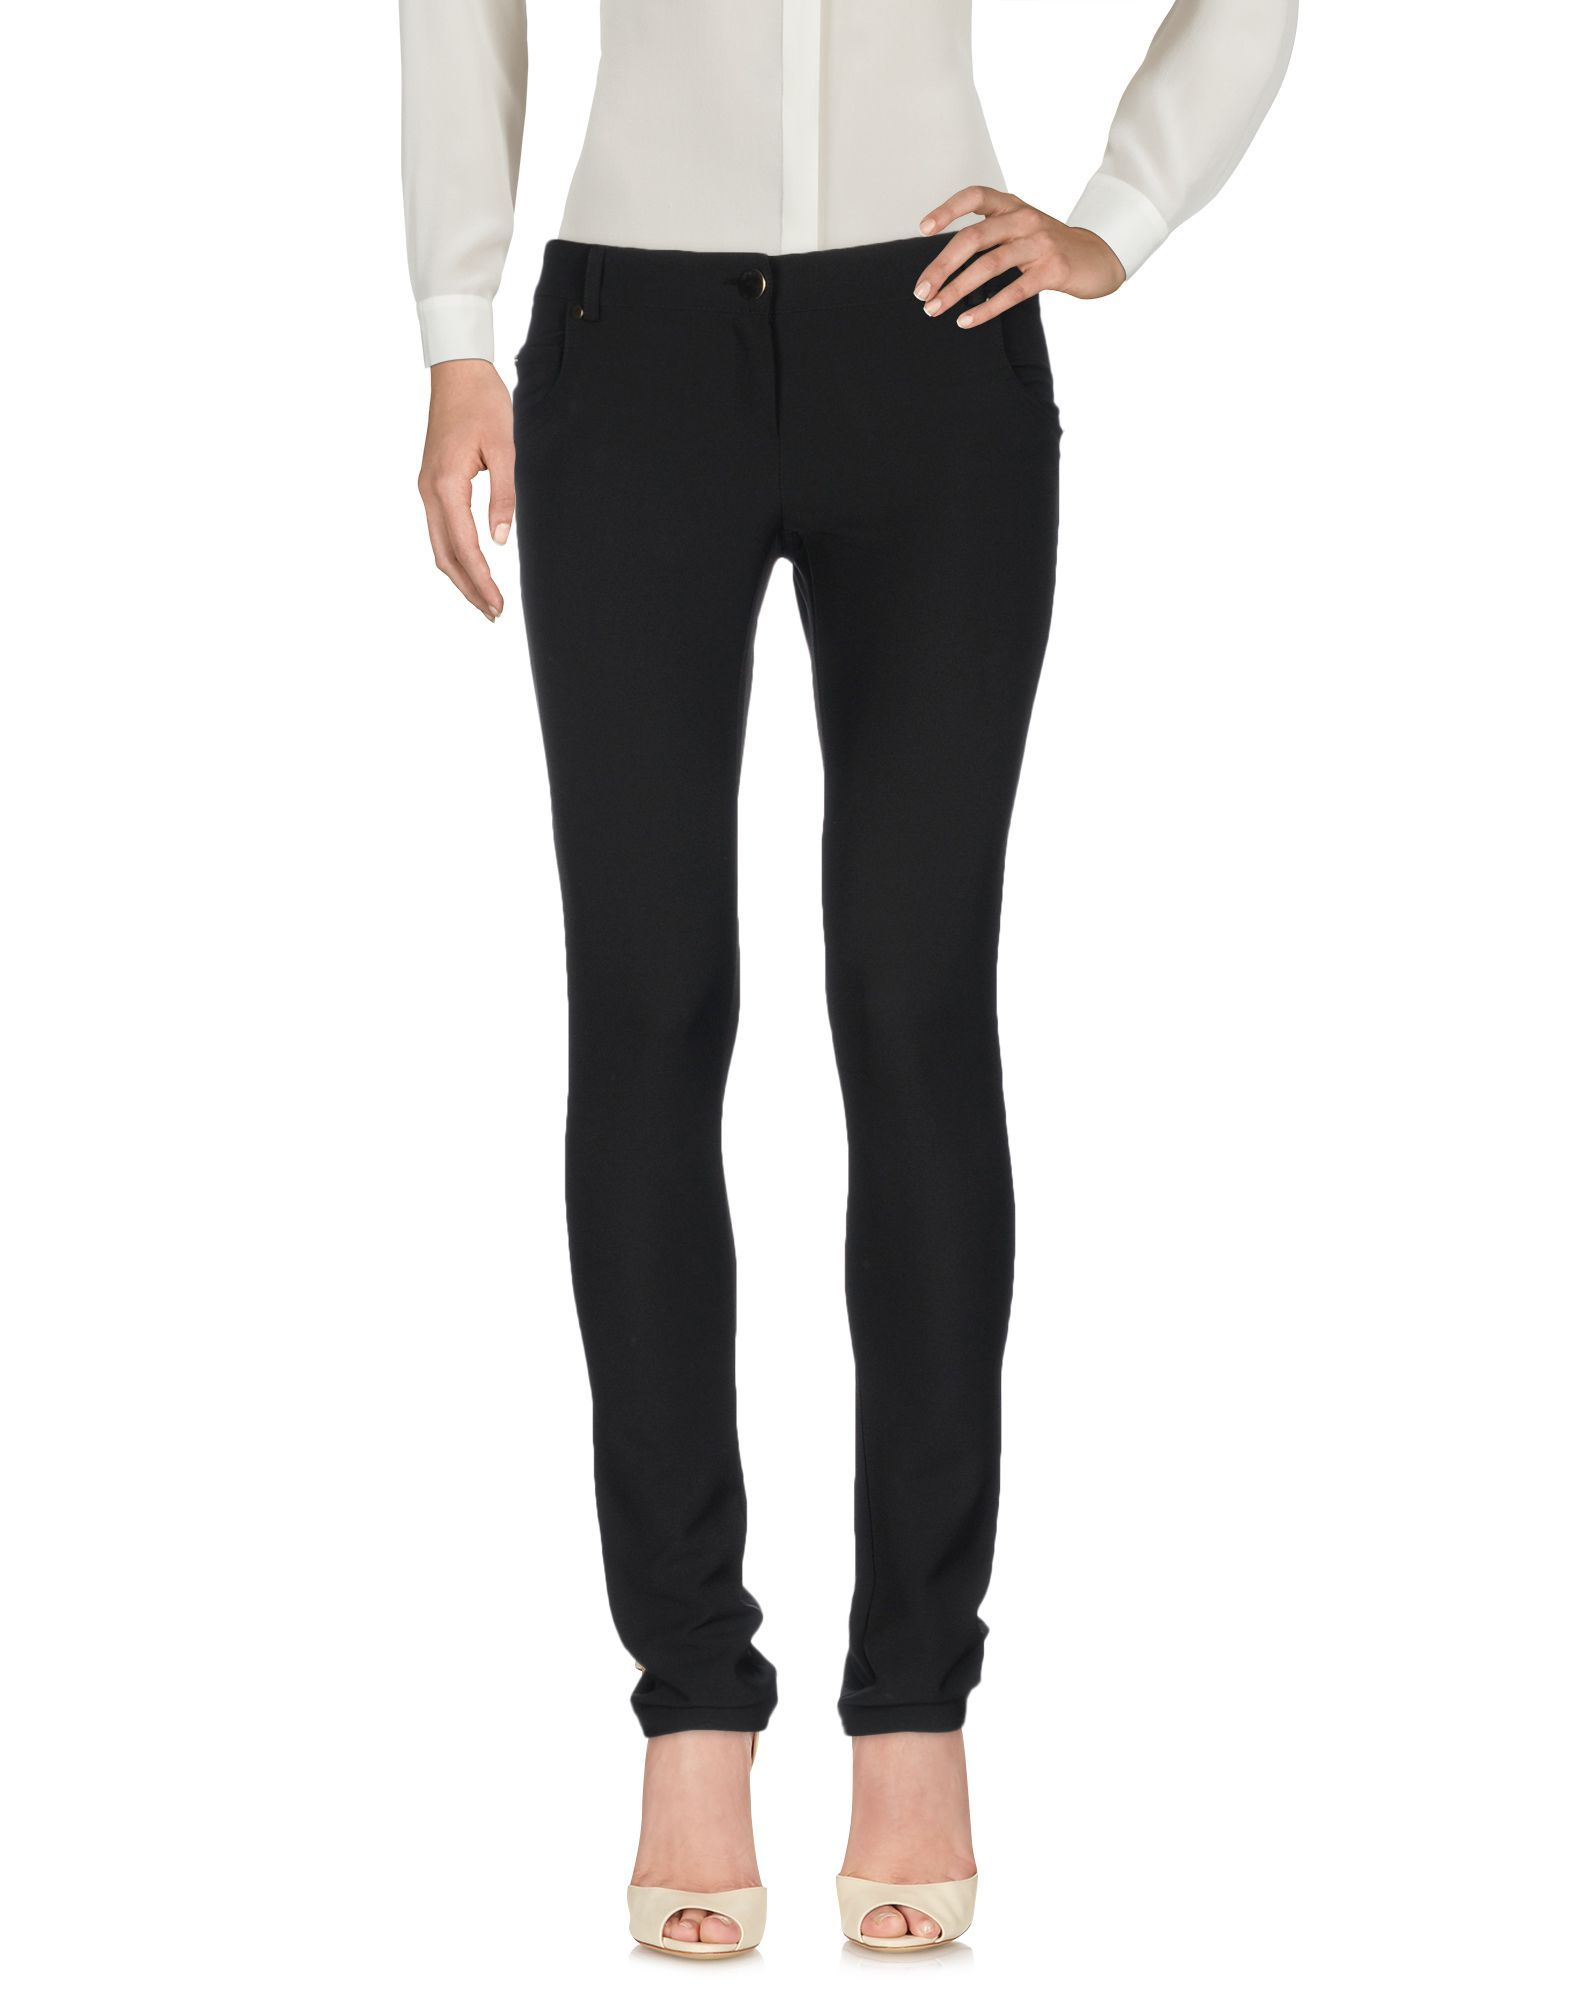 Trousers Relish Black Women's Polyester